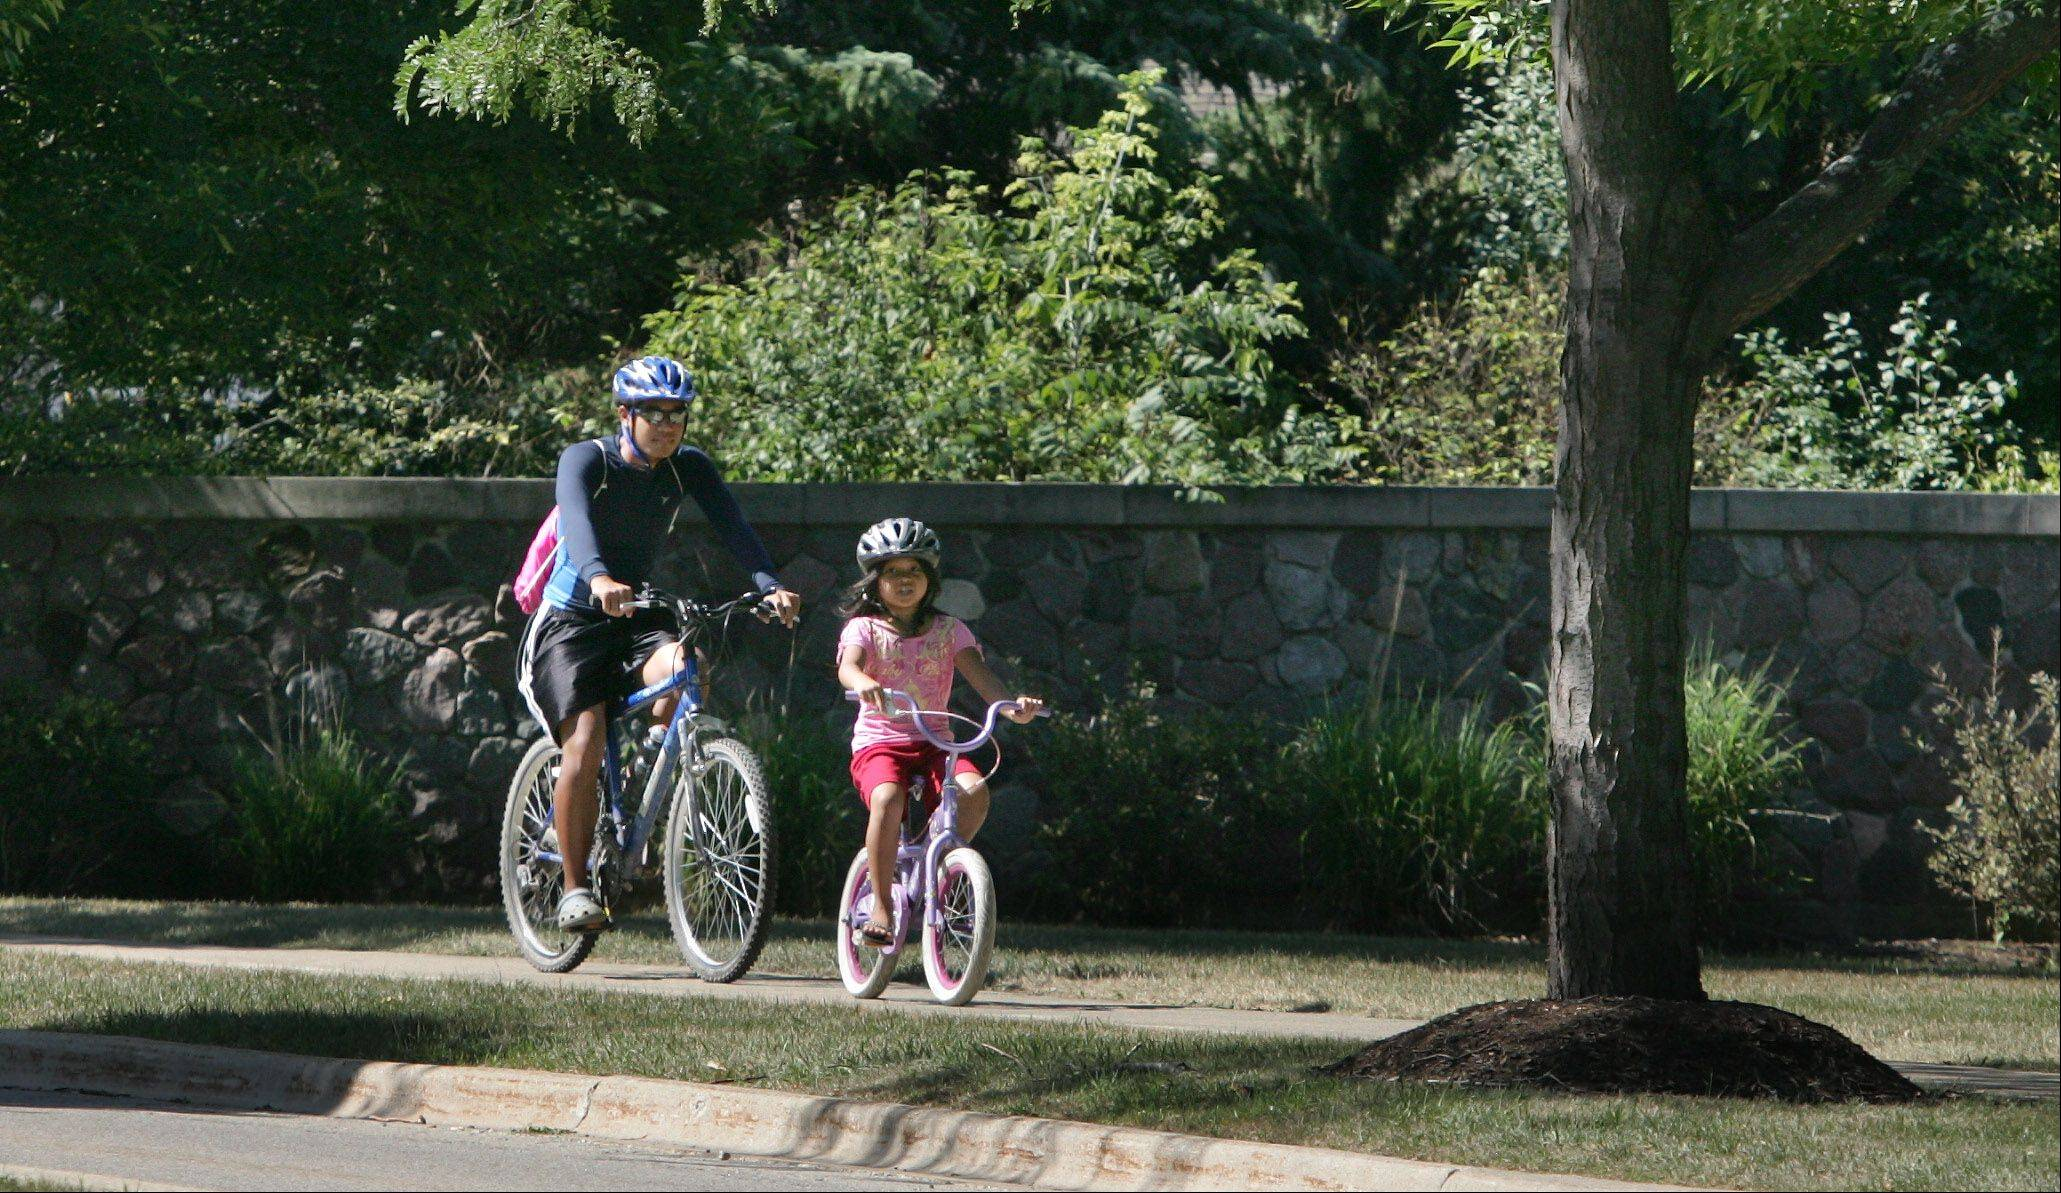 Cousins Justin Ouk and Sarena Yath, both 7, ride their bikes in the Haryan Farms neighborhood in Grayslake.